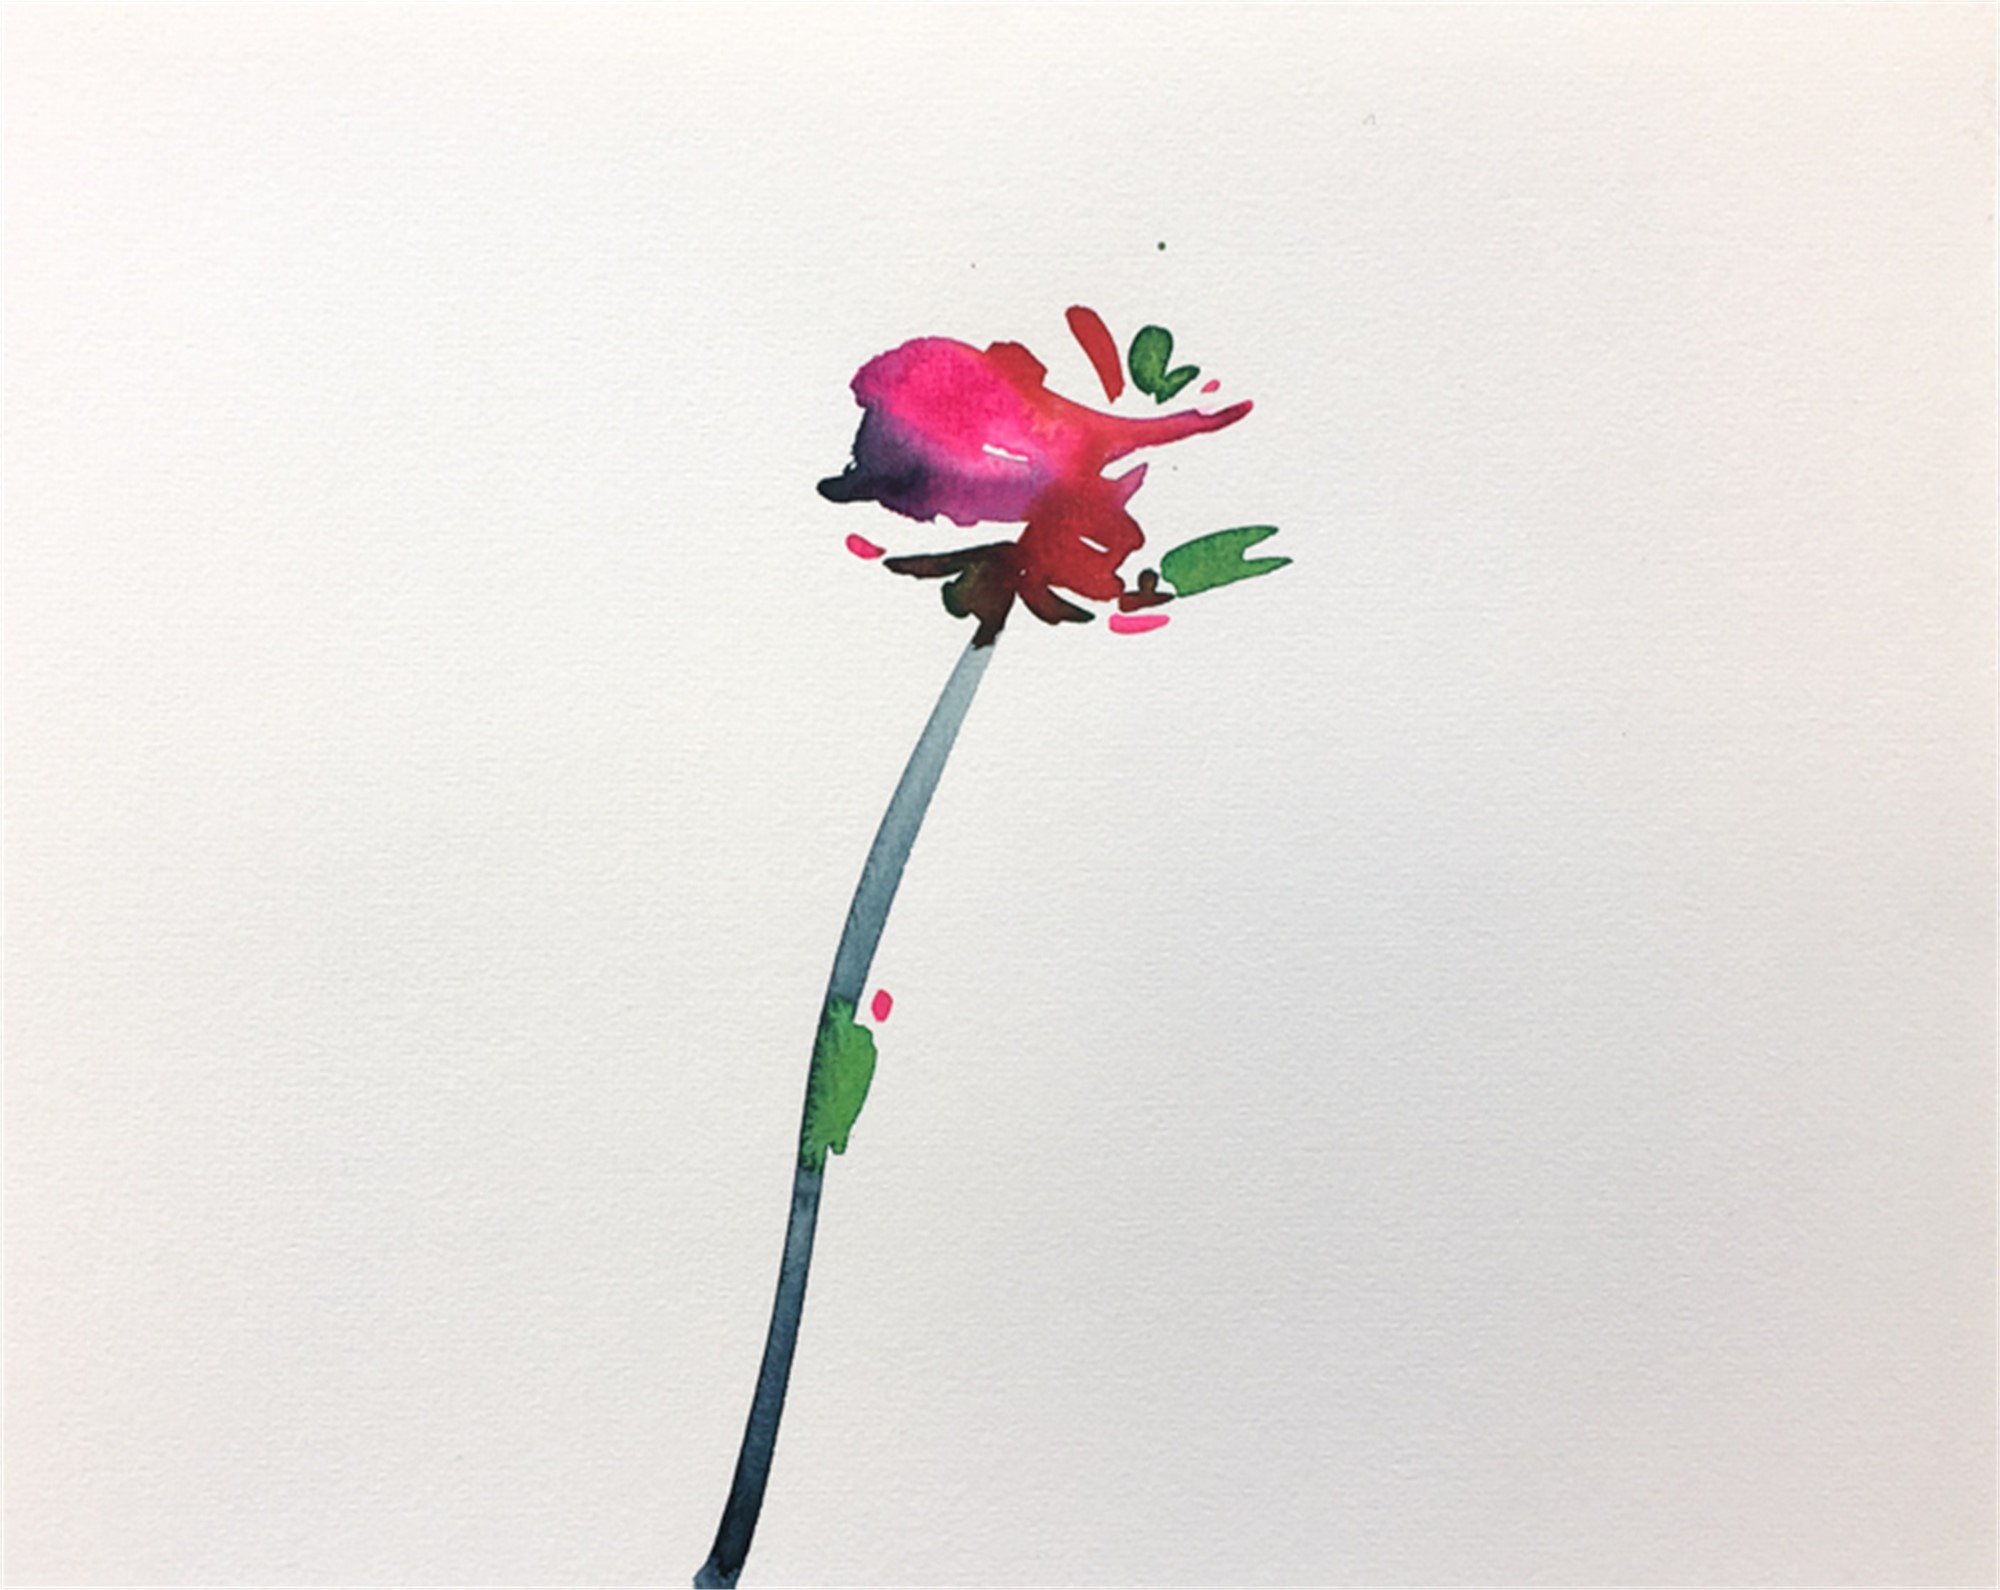 Floral Watercolor No. 10 by Christian Rothmann